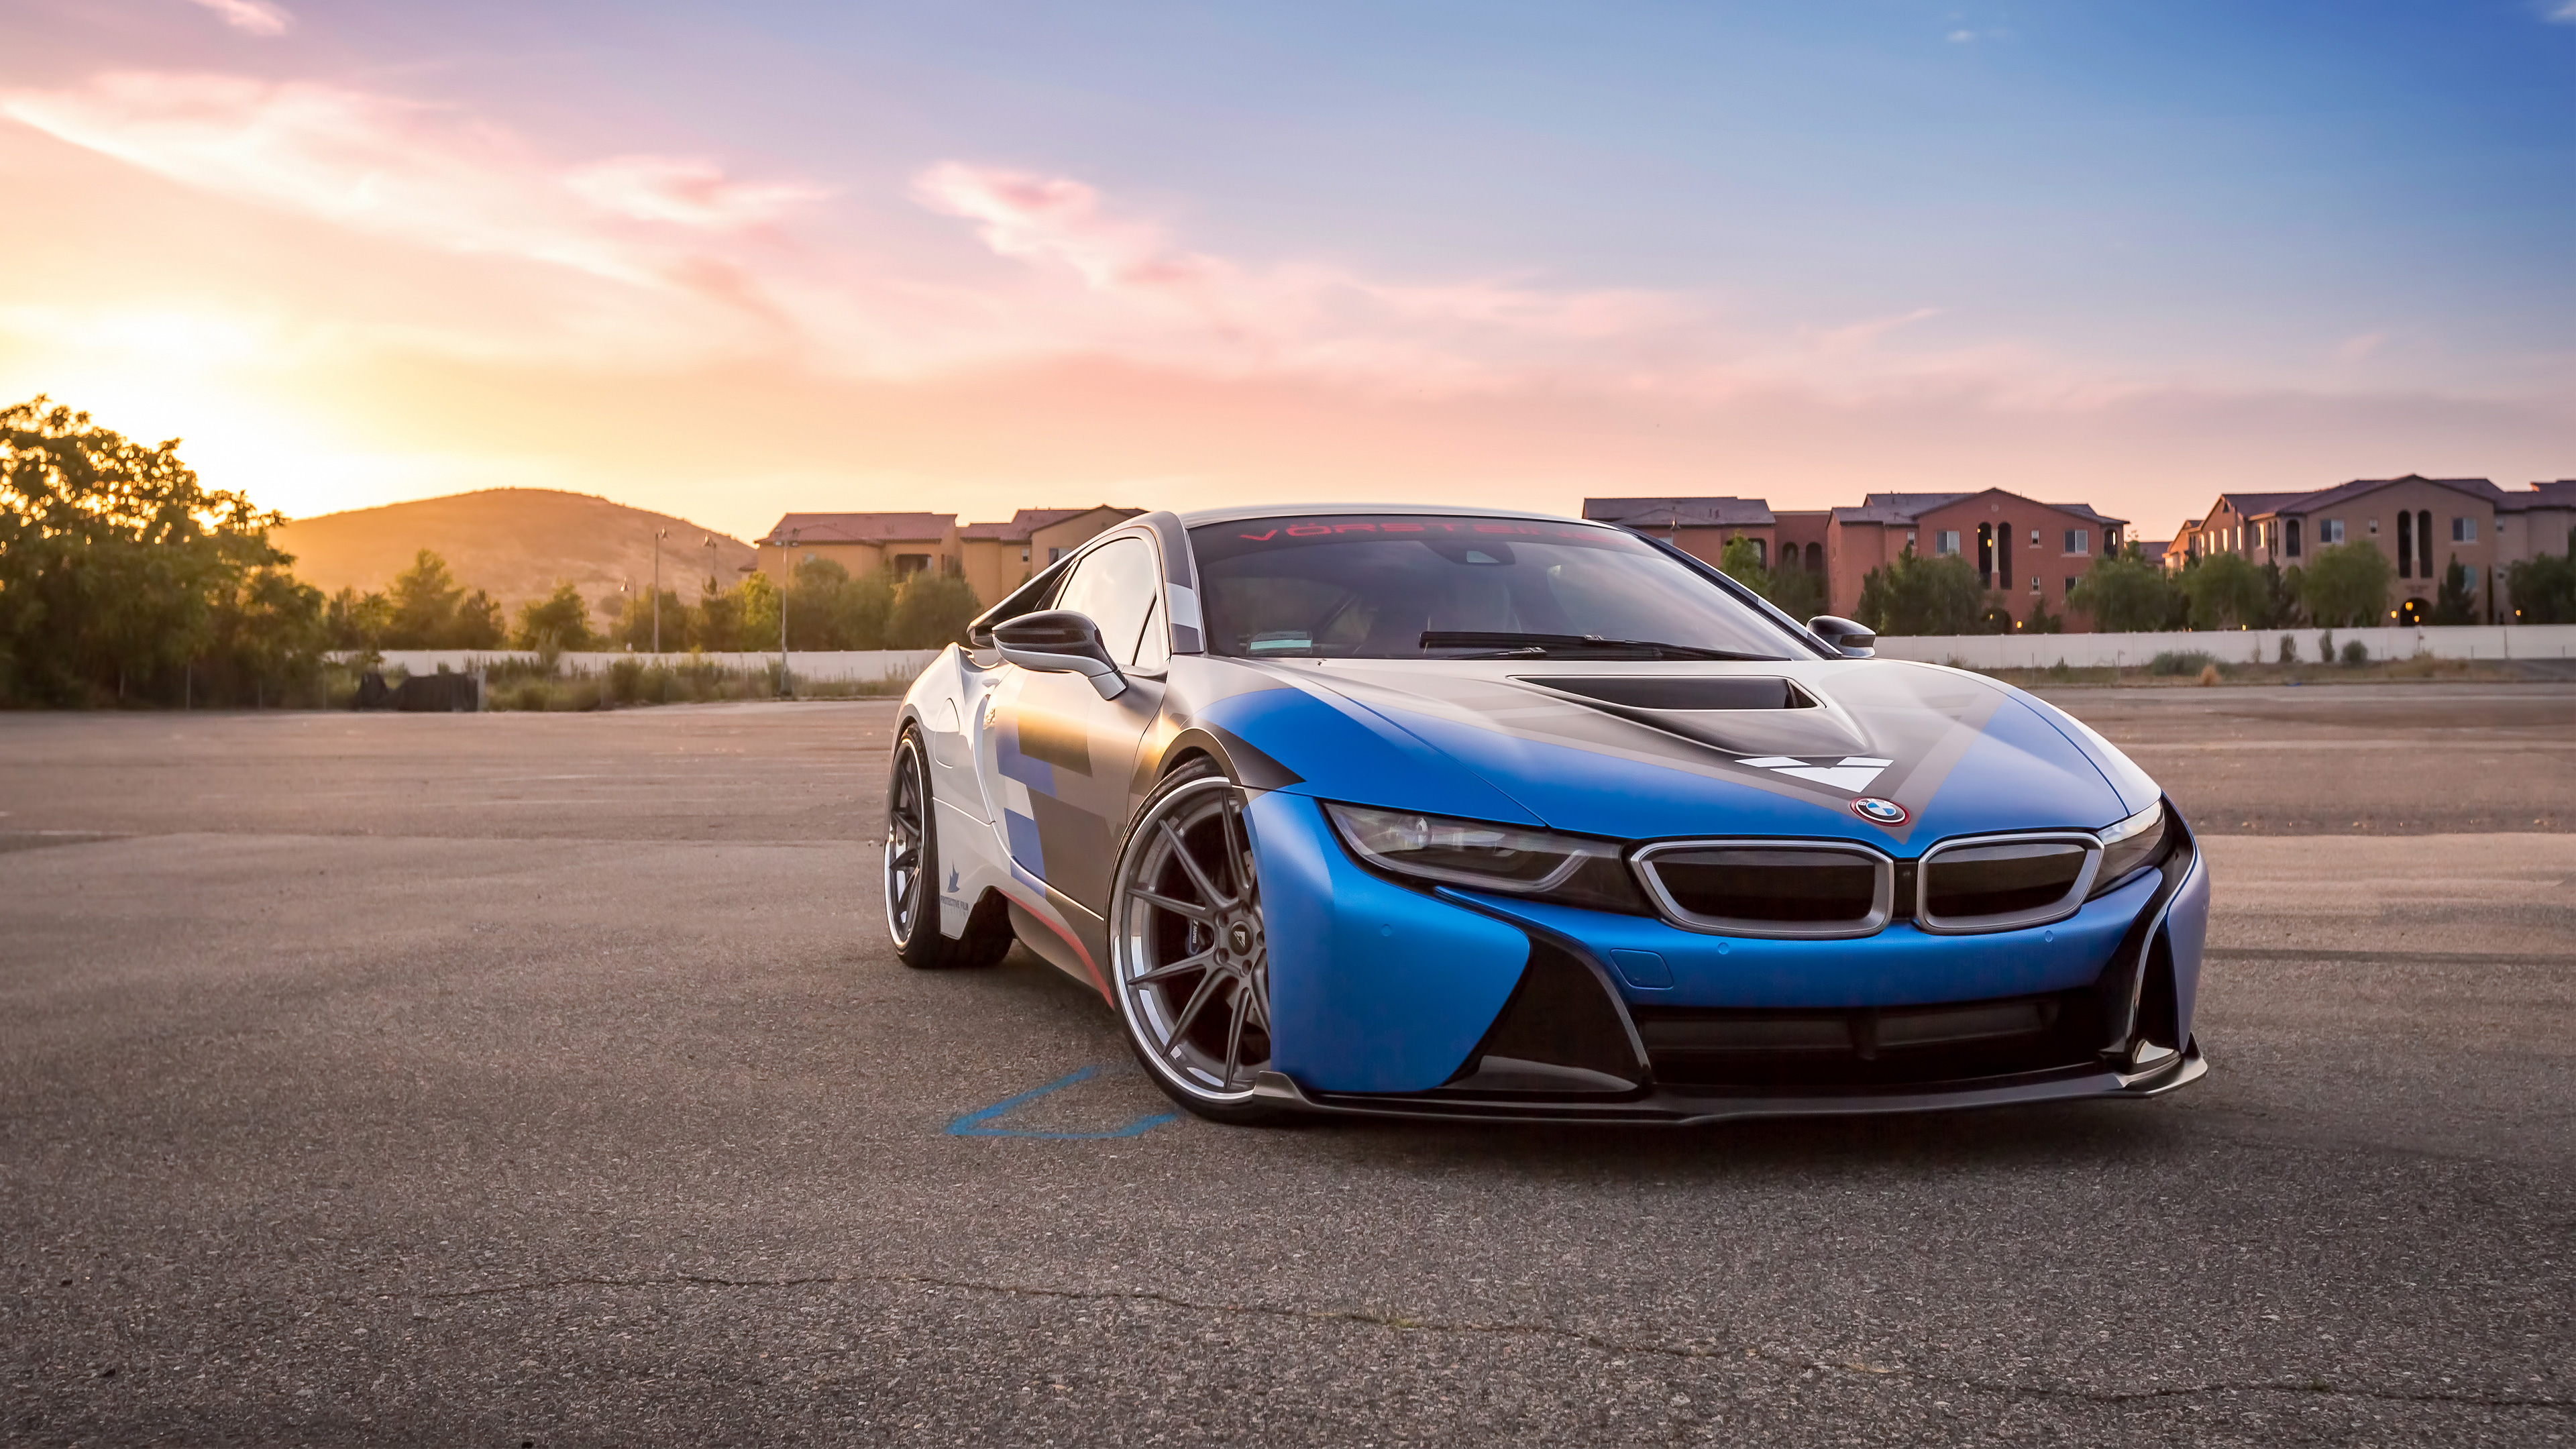 640x960 Bmw I8 Vorsteiner Iphone 4 Iphone 4s Hd 4k Wallpapers